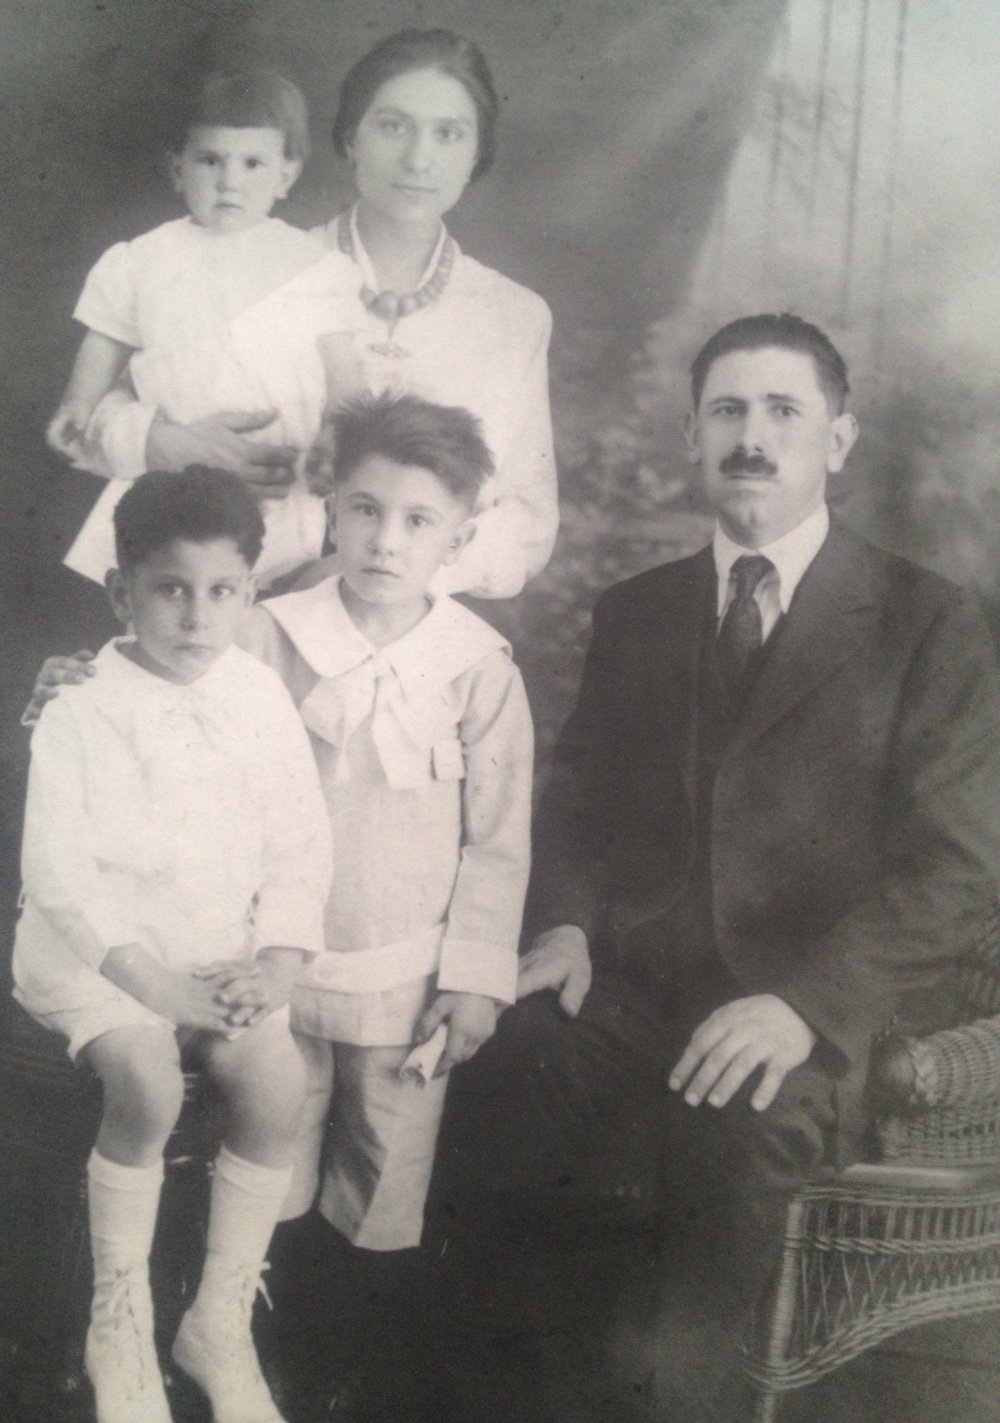 My Grandmother, Cesira DeLaurentiis and her family.